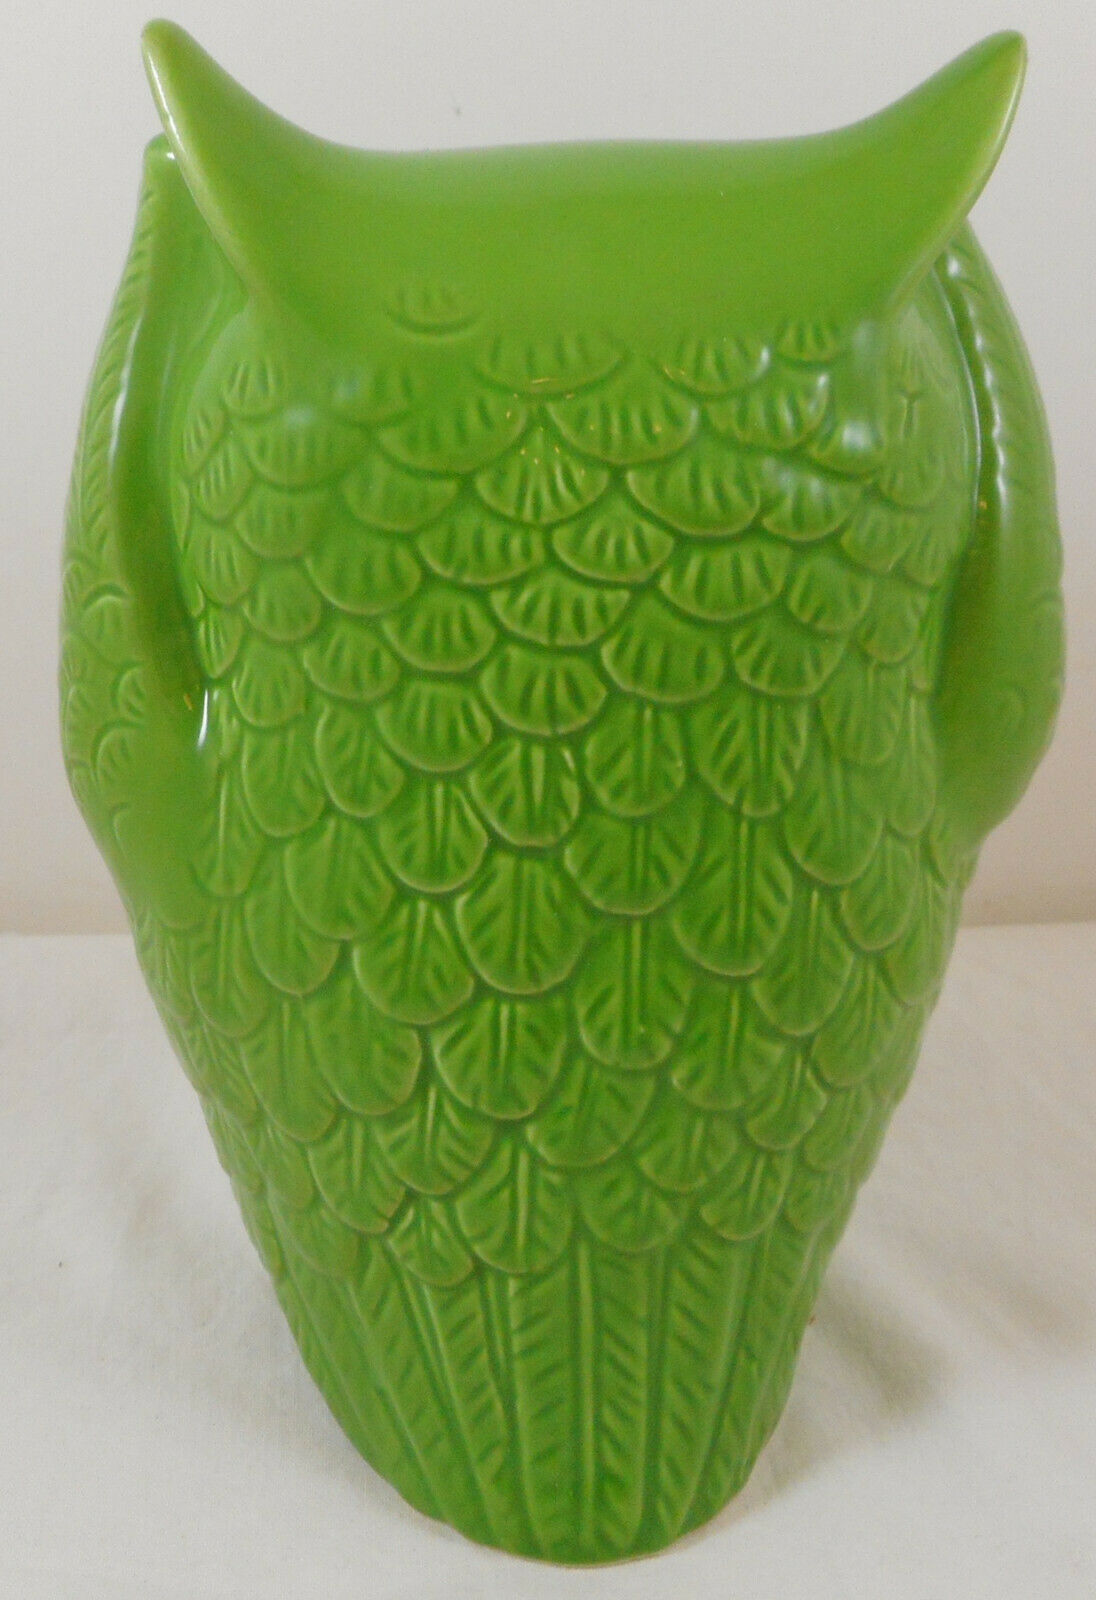 "Urban Trends Hear No Evil owl Figurine 7"" Green Ceramic"